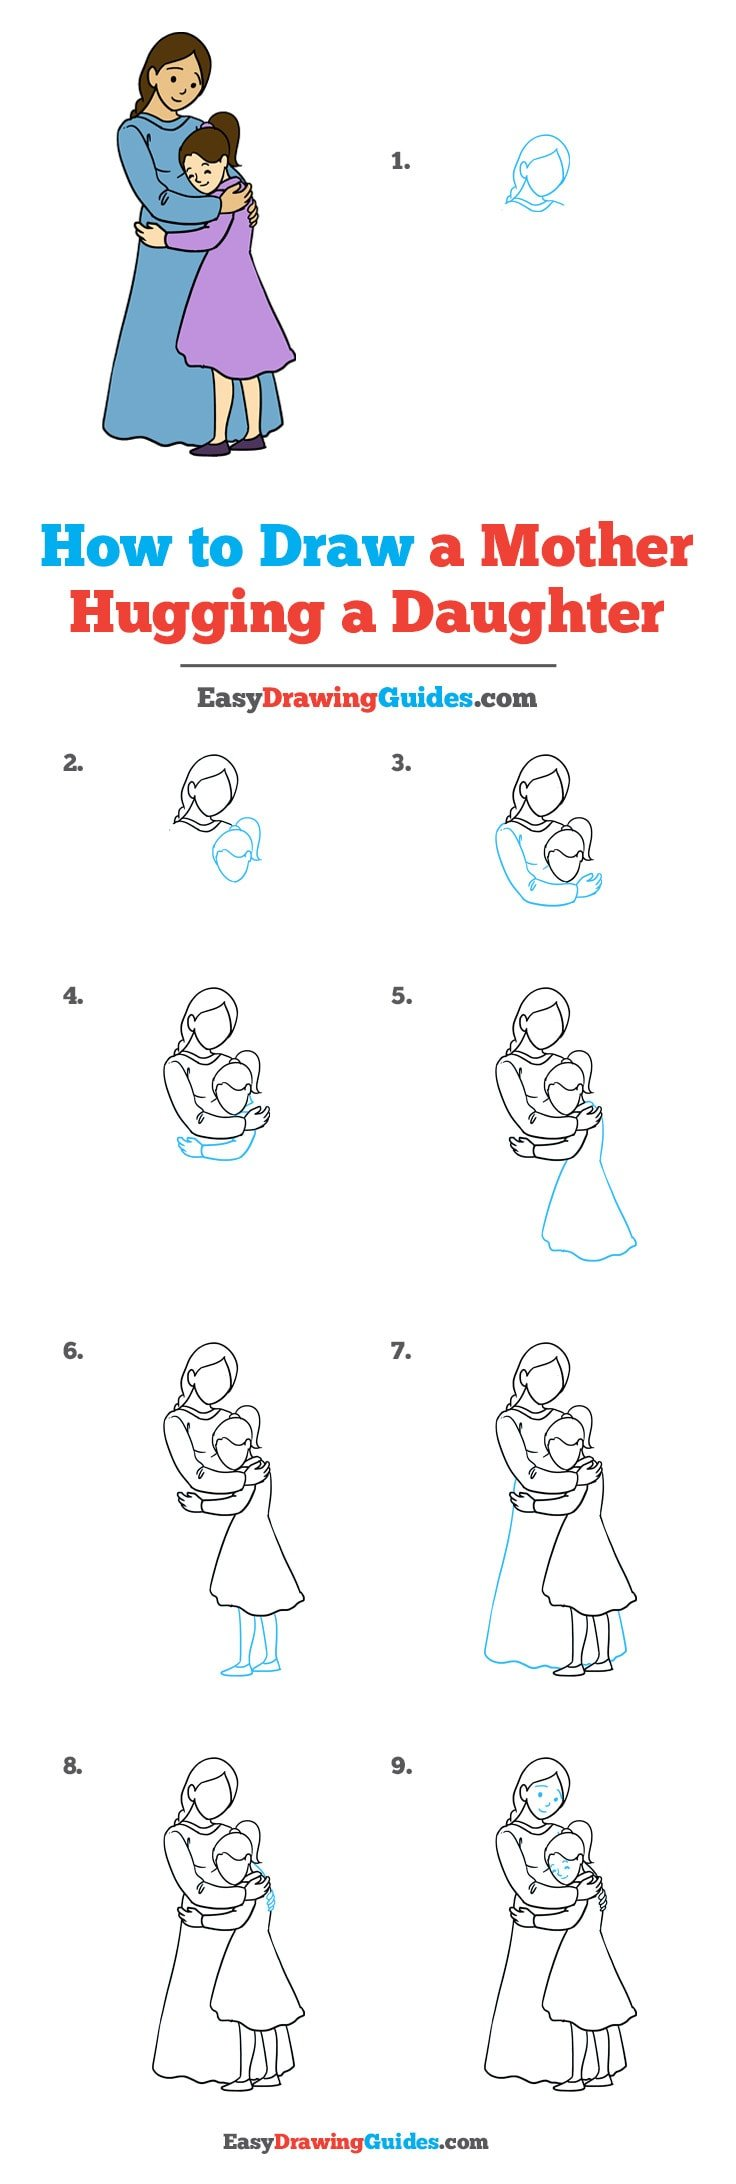 How to Draw Mother Hugging a Daughter